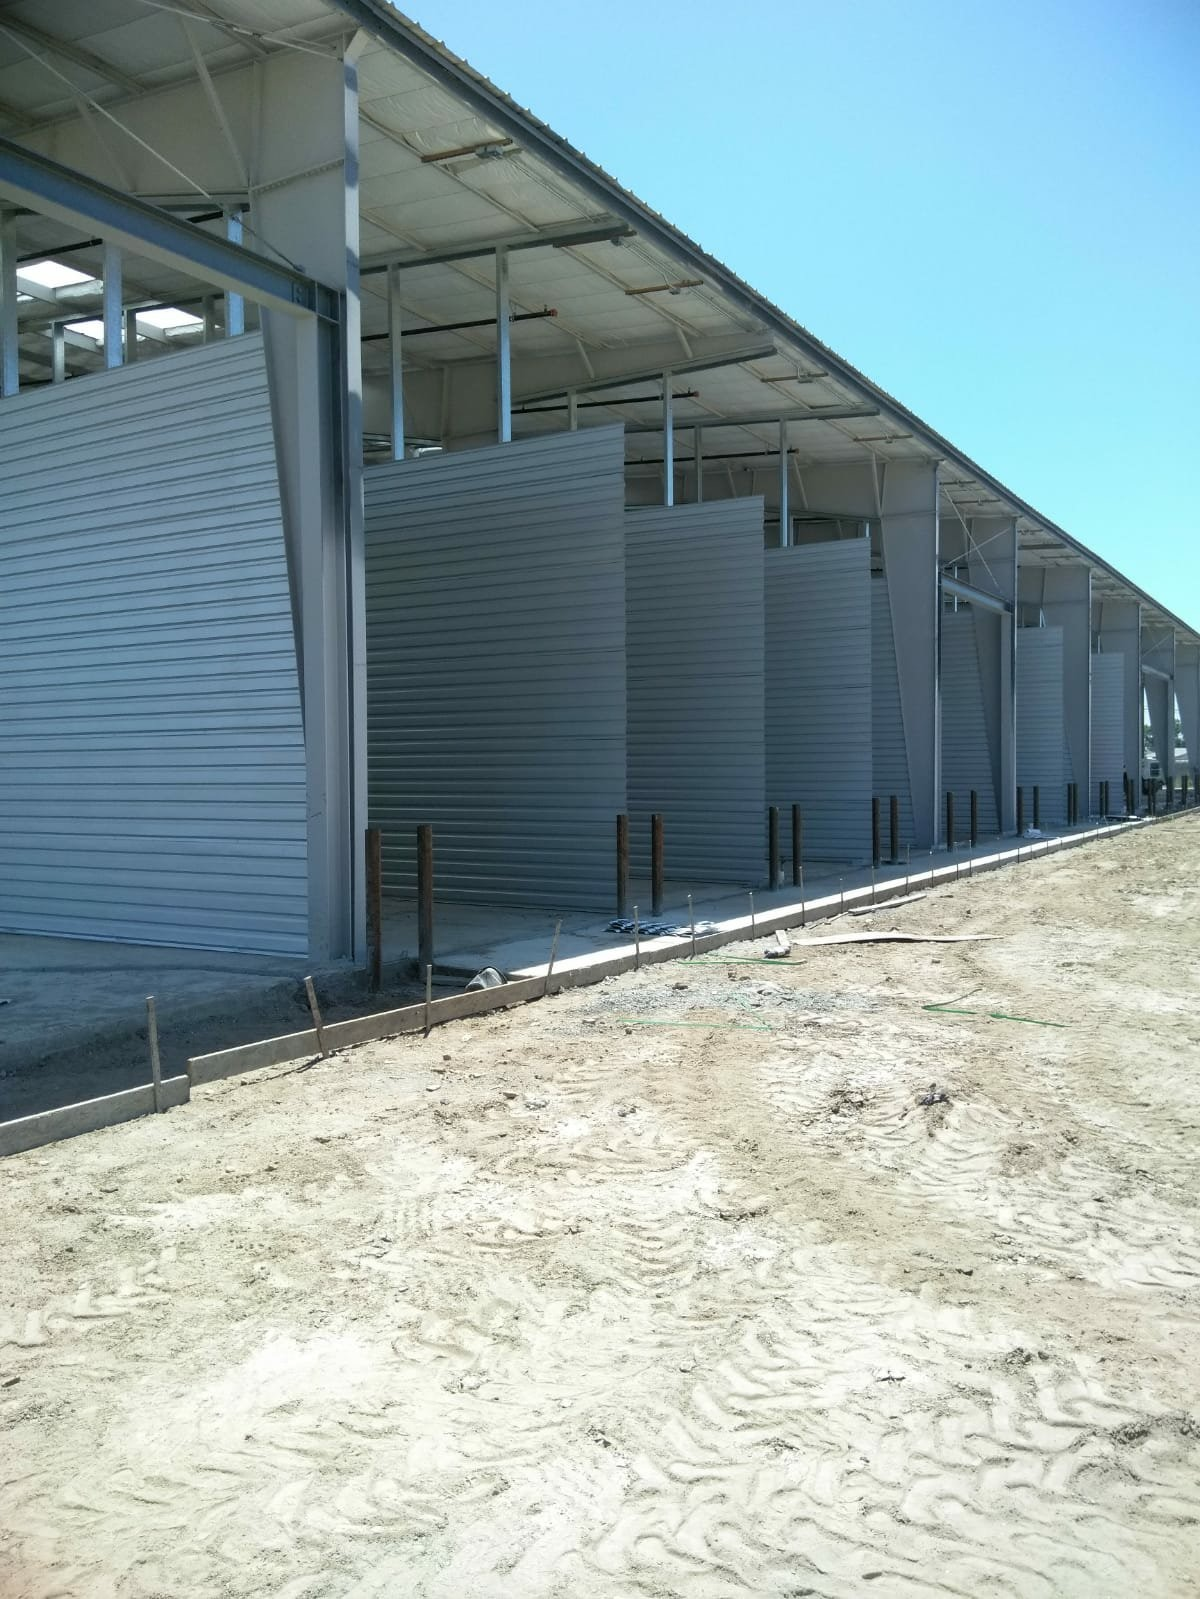 Rv Storage Amp Self Storage Building Conversion In Visalia